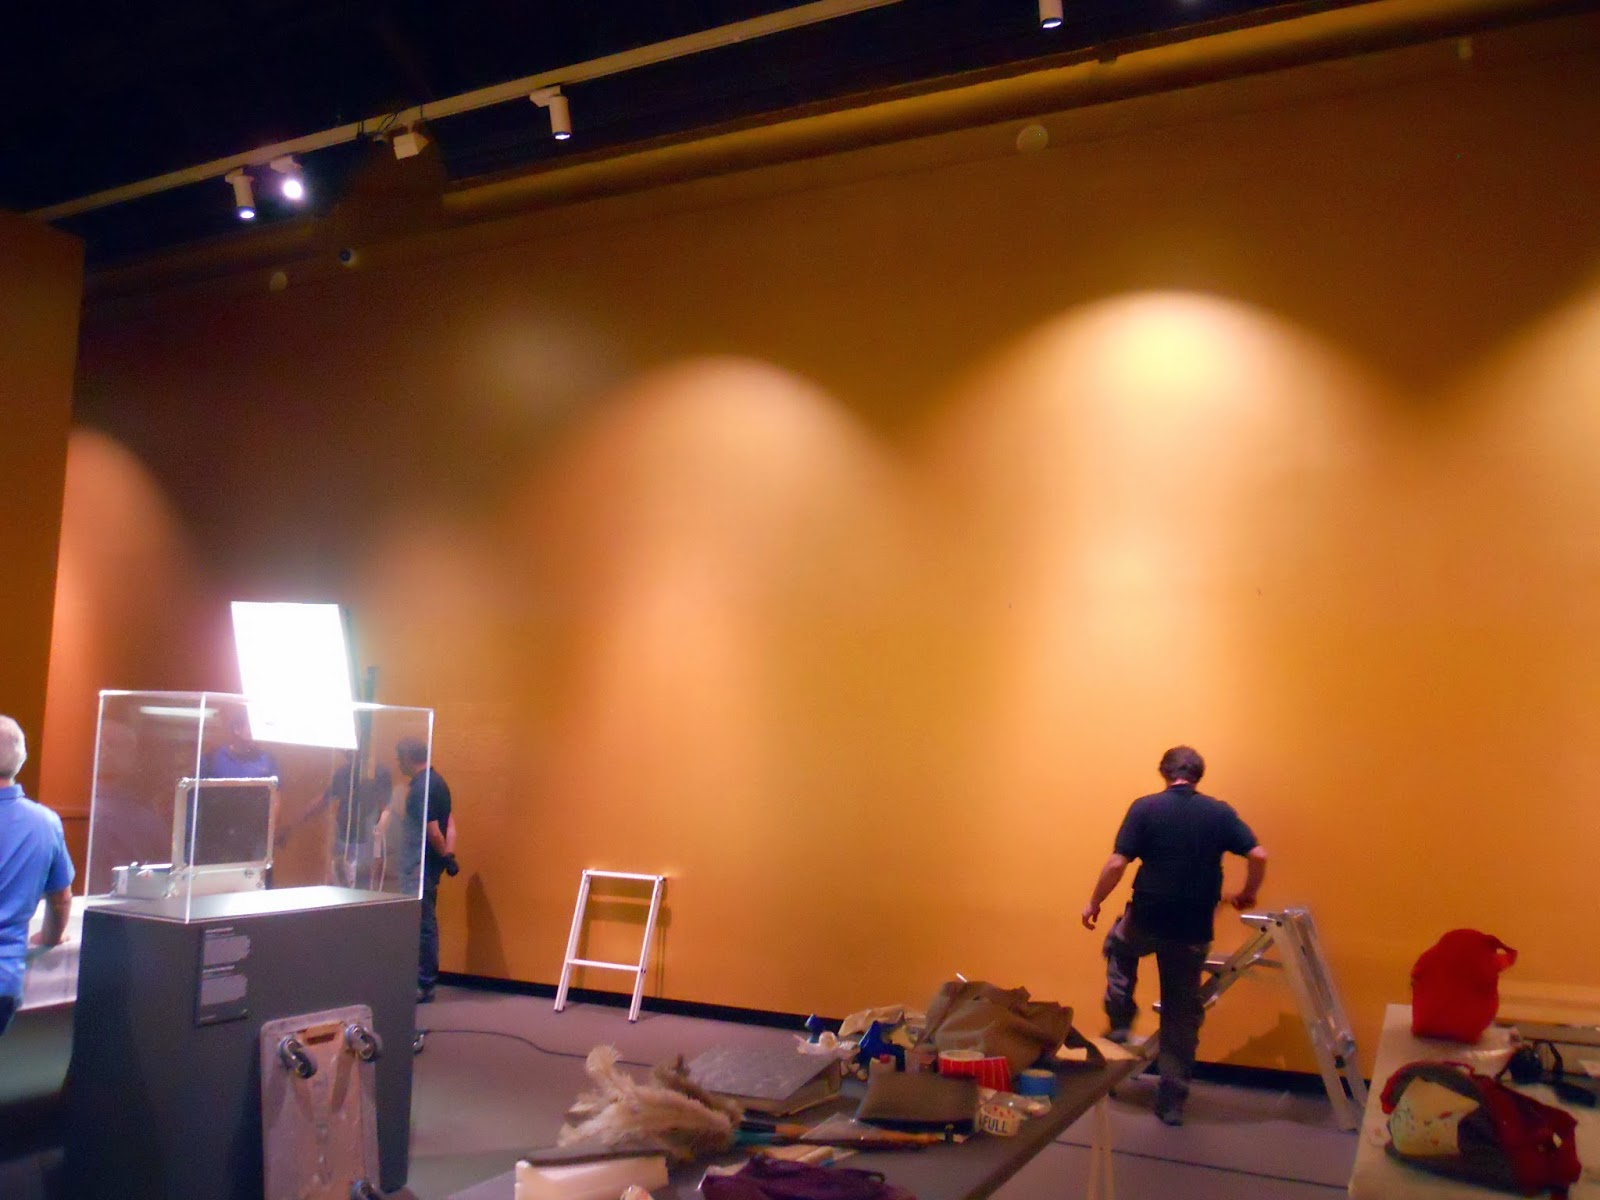 The last vestiges of the exhibition The Greek of Toledo being deinstalled at the Museo Santa Cruz.